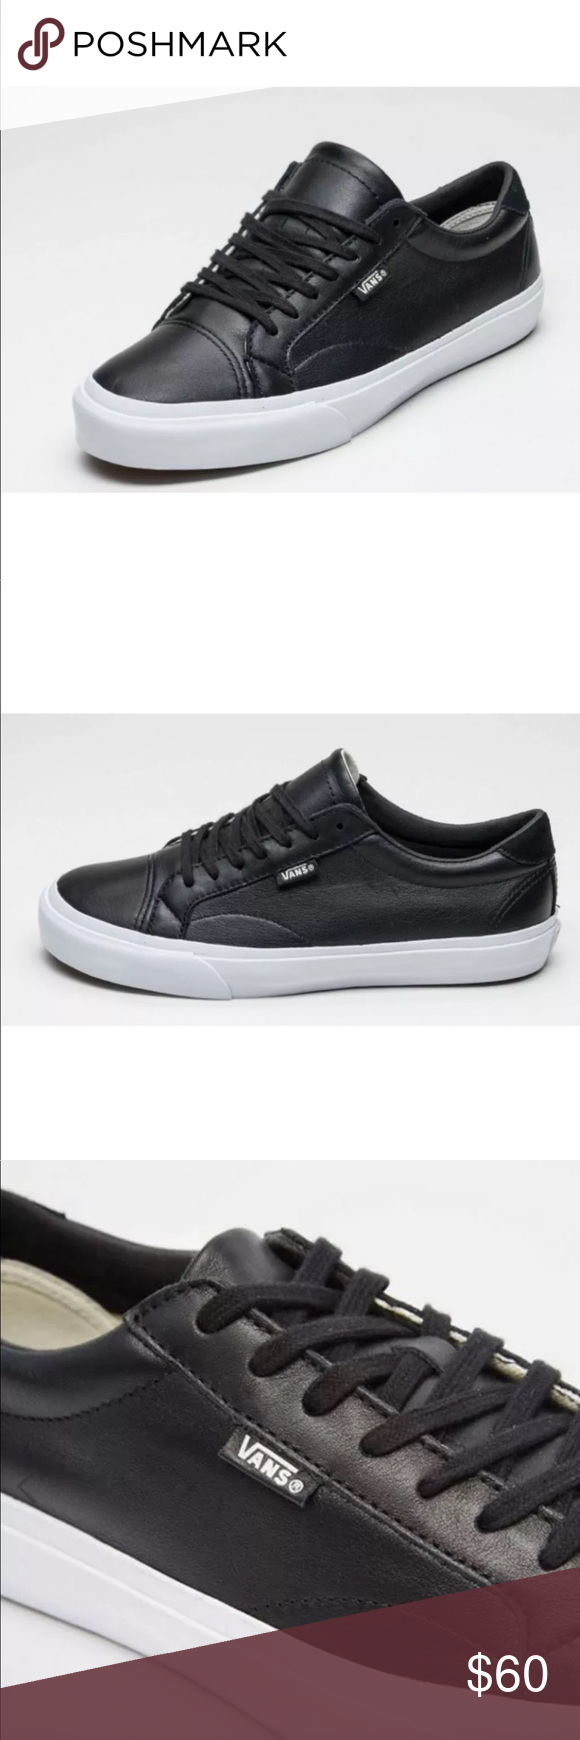 ae23fe144138b1 Vans Men s Court DX Leather Black Skate Shoes NEW AUTHENTIC Vans Court DX  Leather Skate Shoes